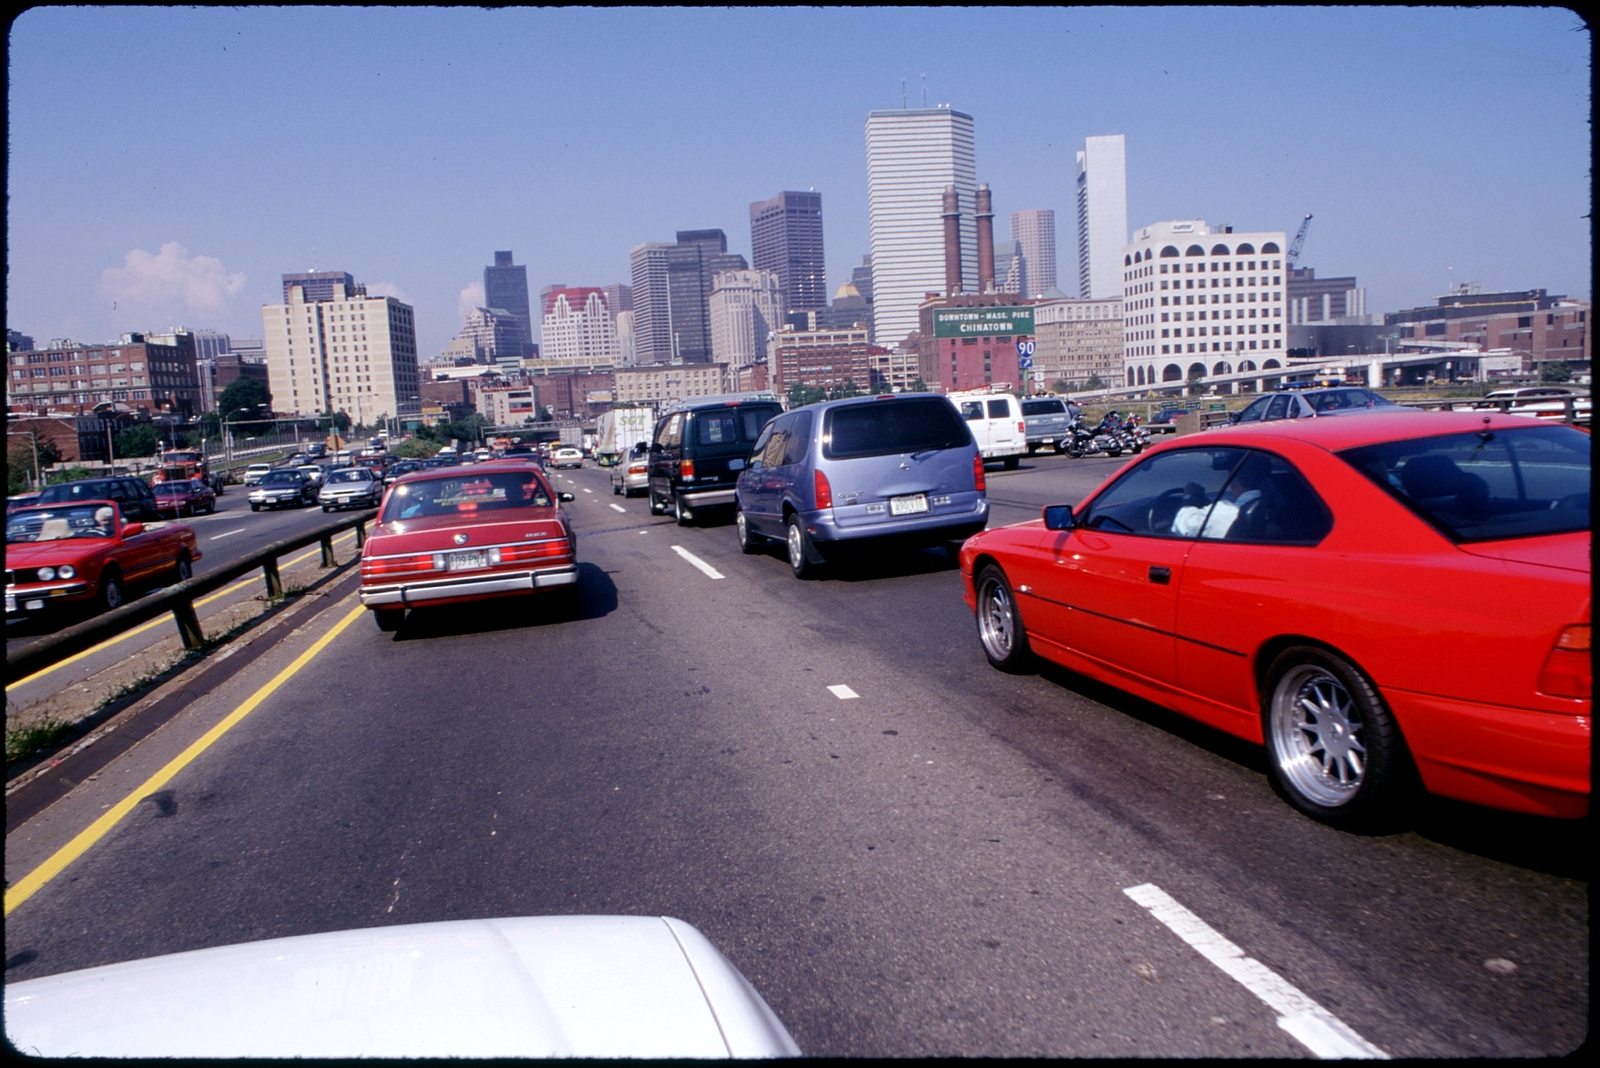 Library of Environmental Images, Office of Research and Development (ORD), September 1996 - Pollution Prevention - Urban traffic on highway (MA)